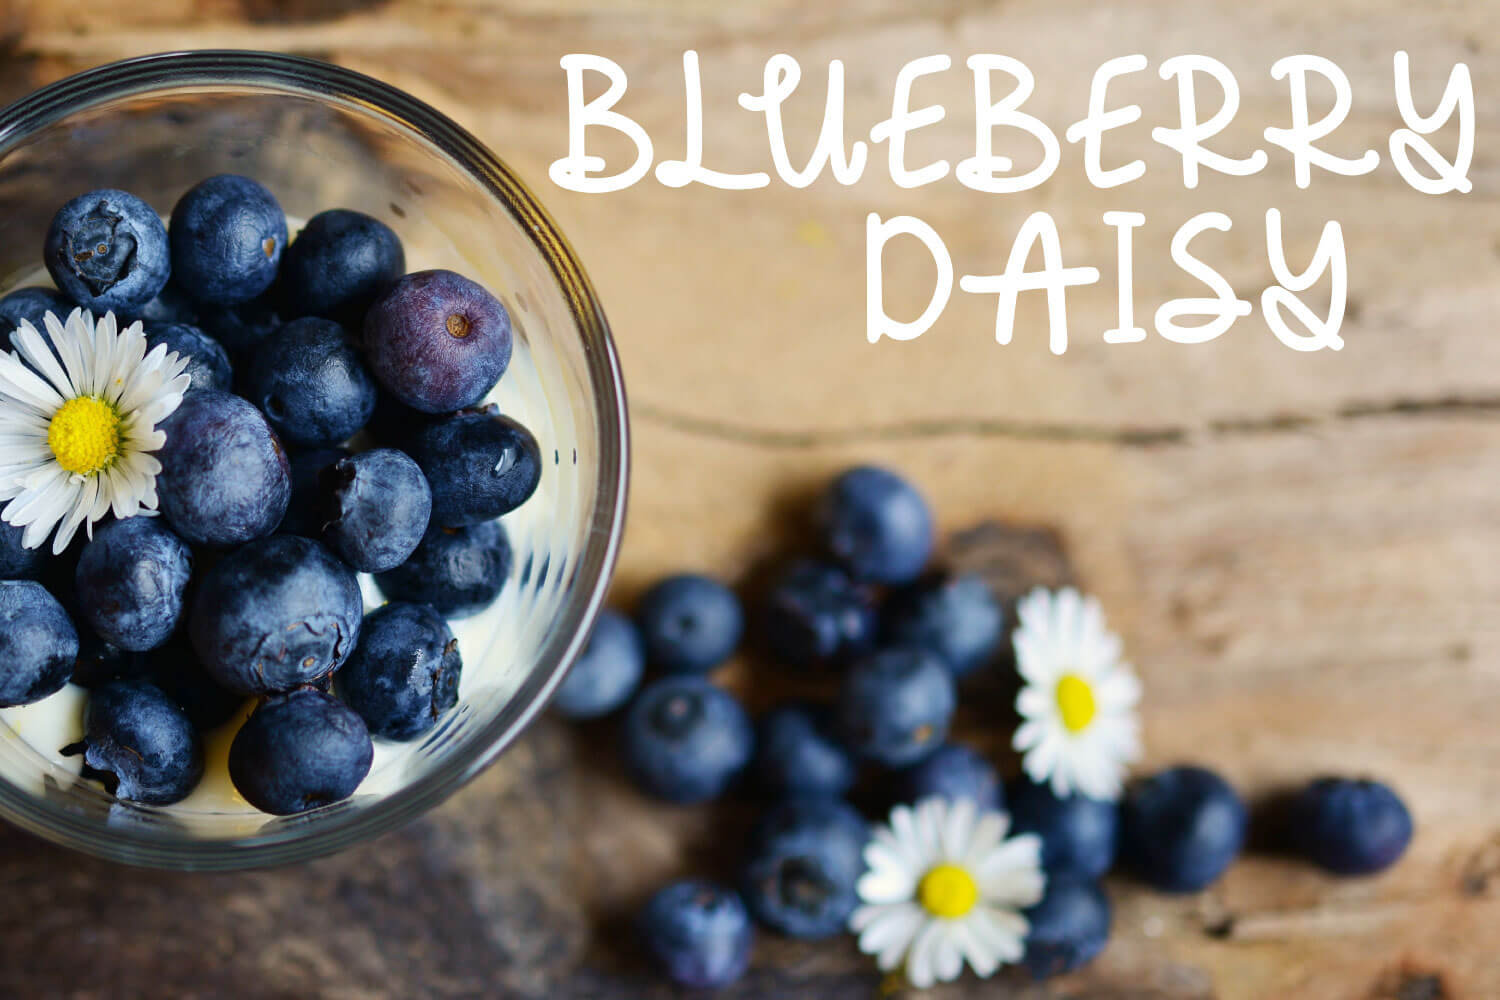 Blueberry Daisy: A Fun Handwritten Font - SVG, PNG, DXF